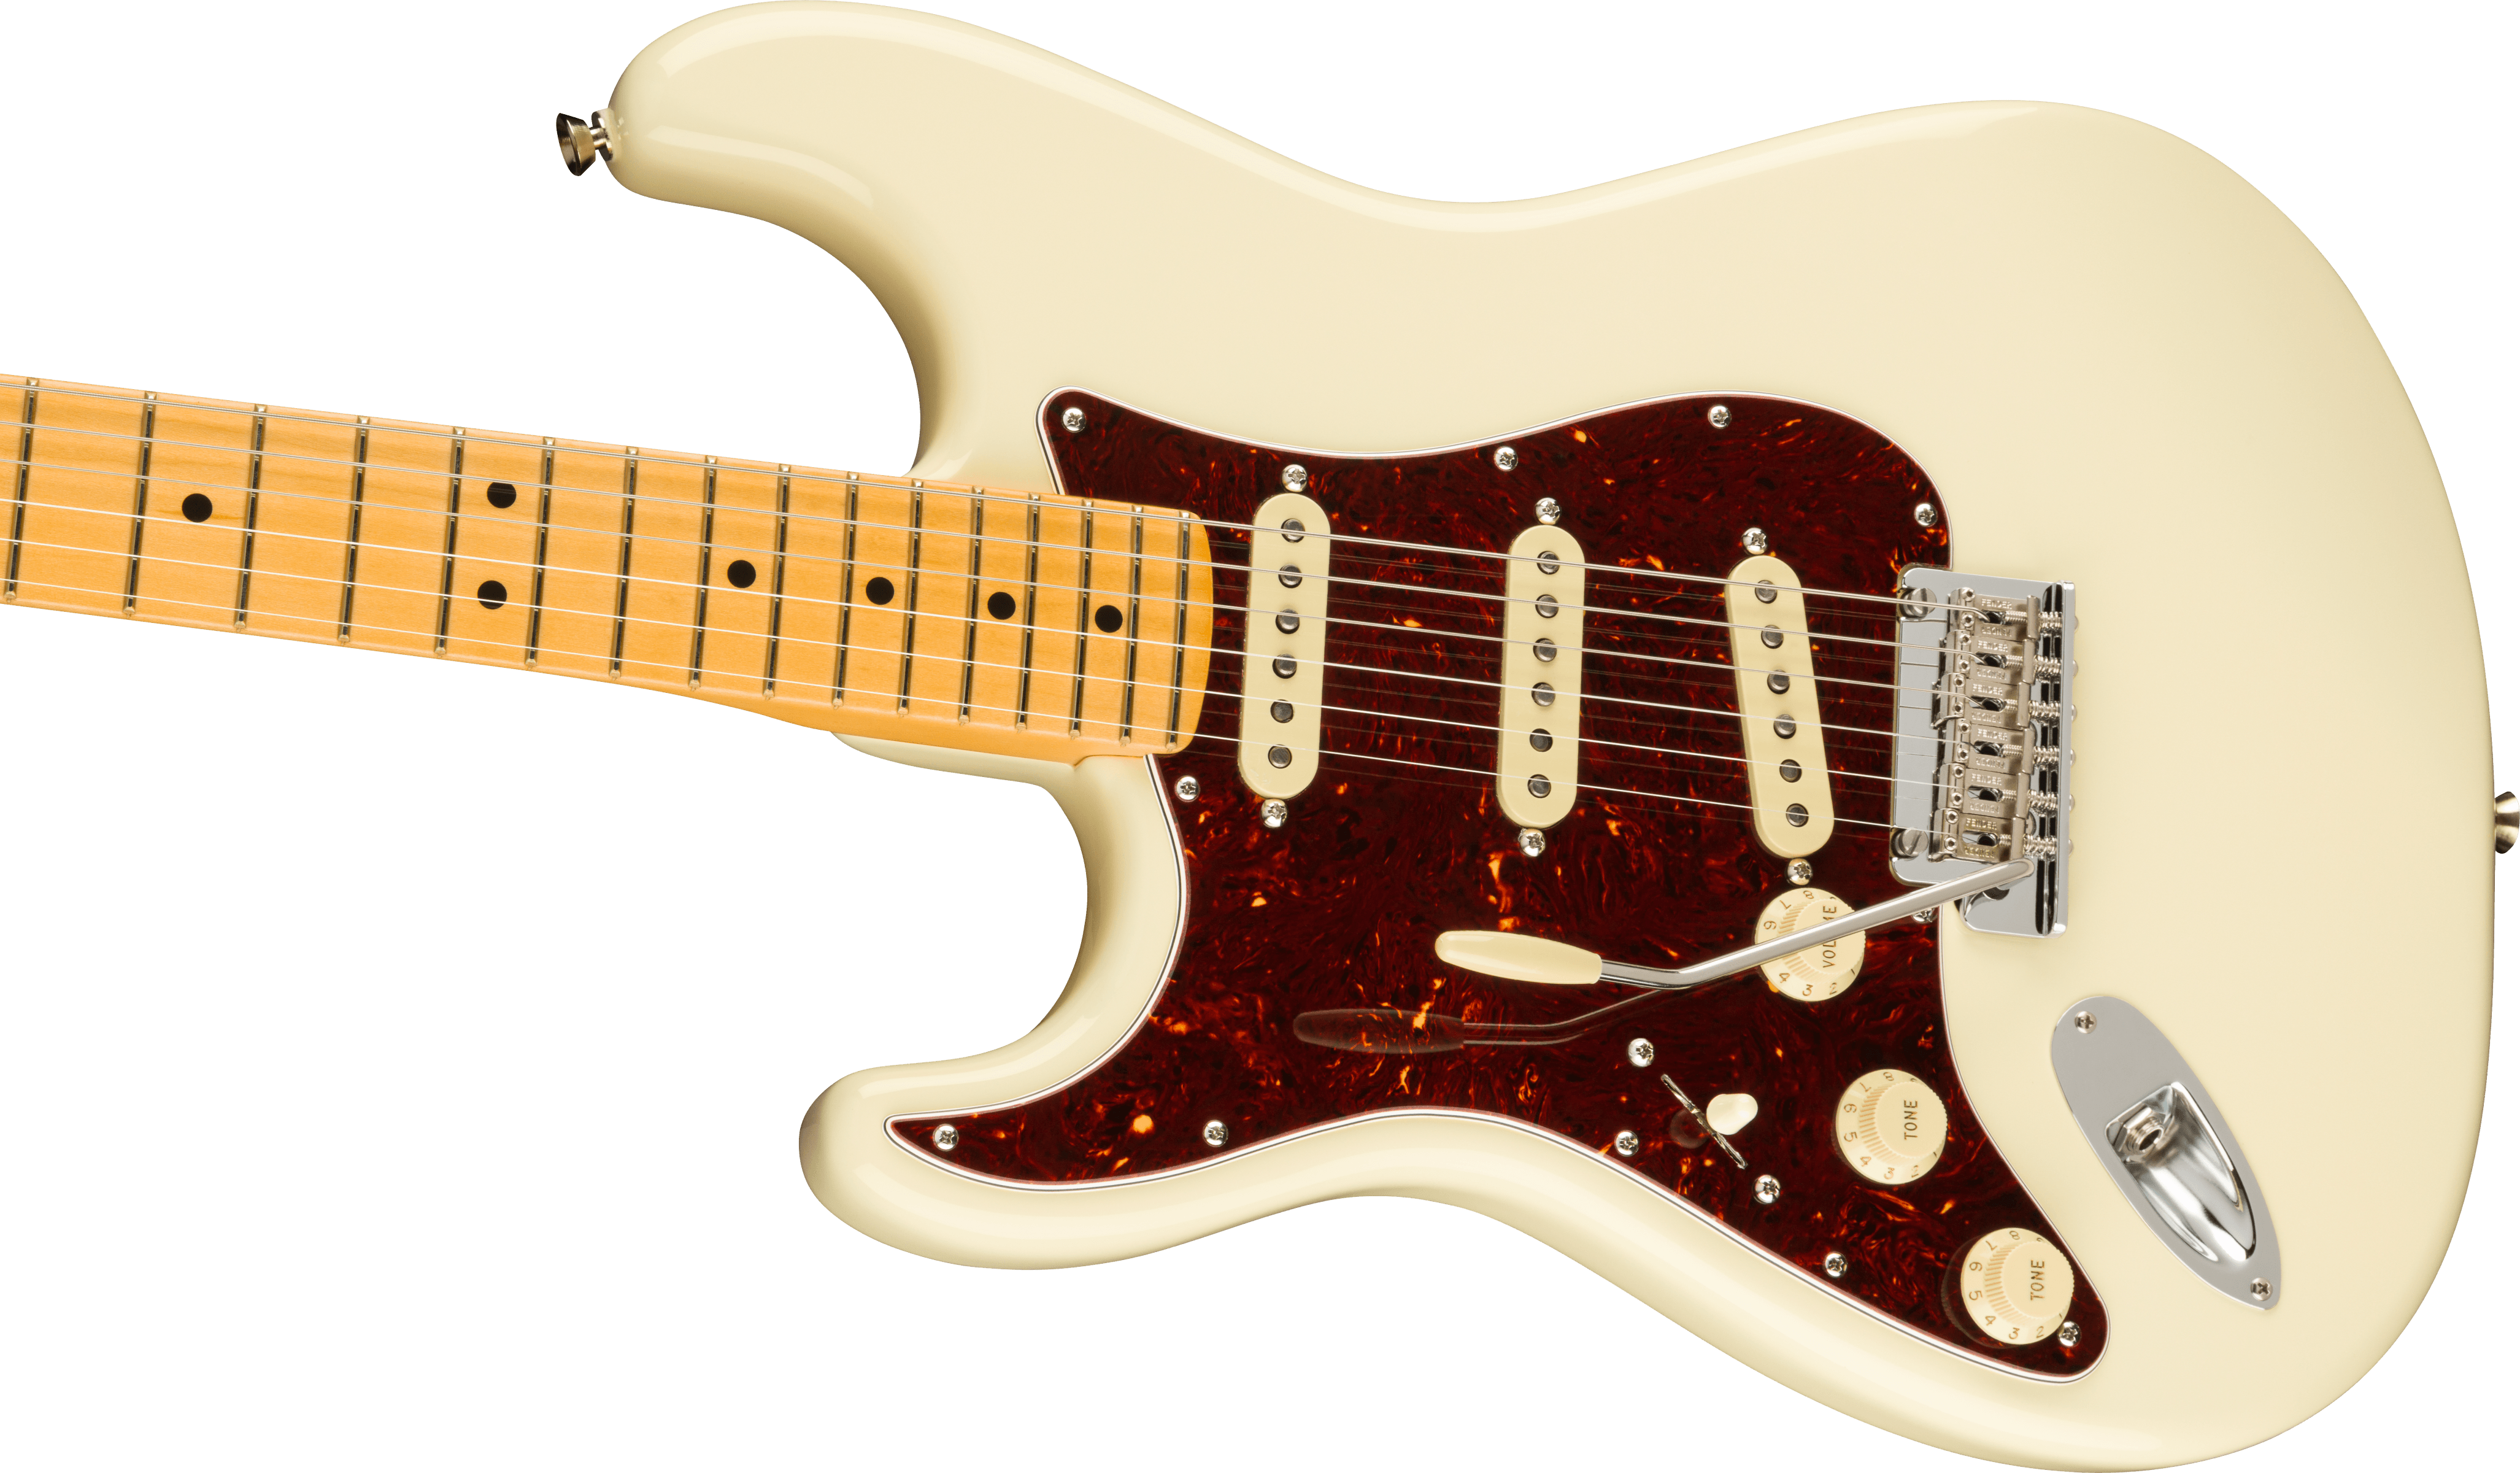 Fender American Professional II Stratocaster® Left-Hand, Maple Fingerboard, Olympic White